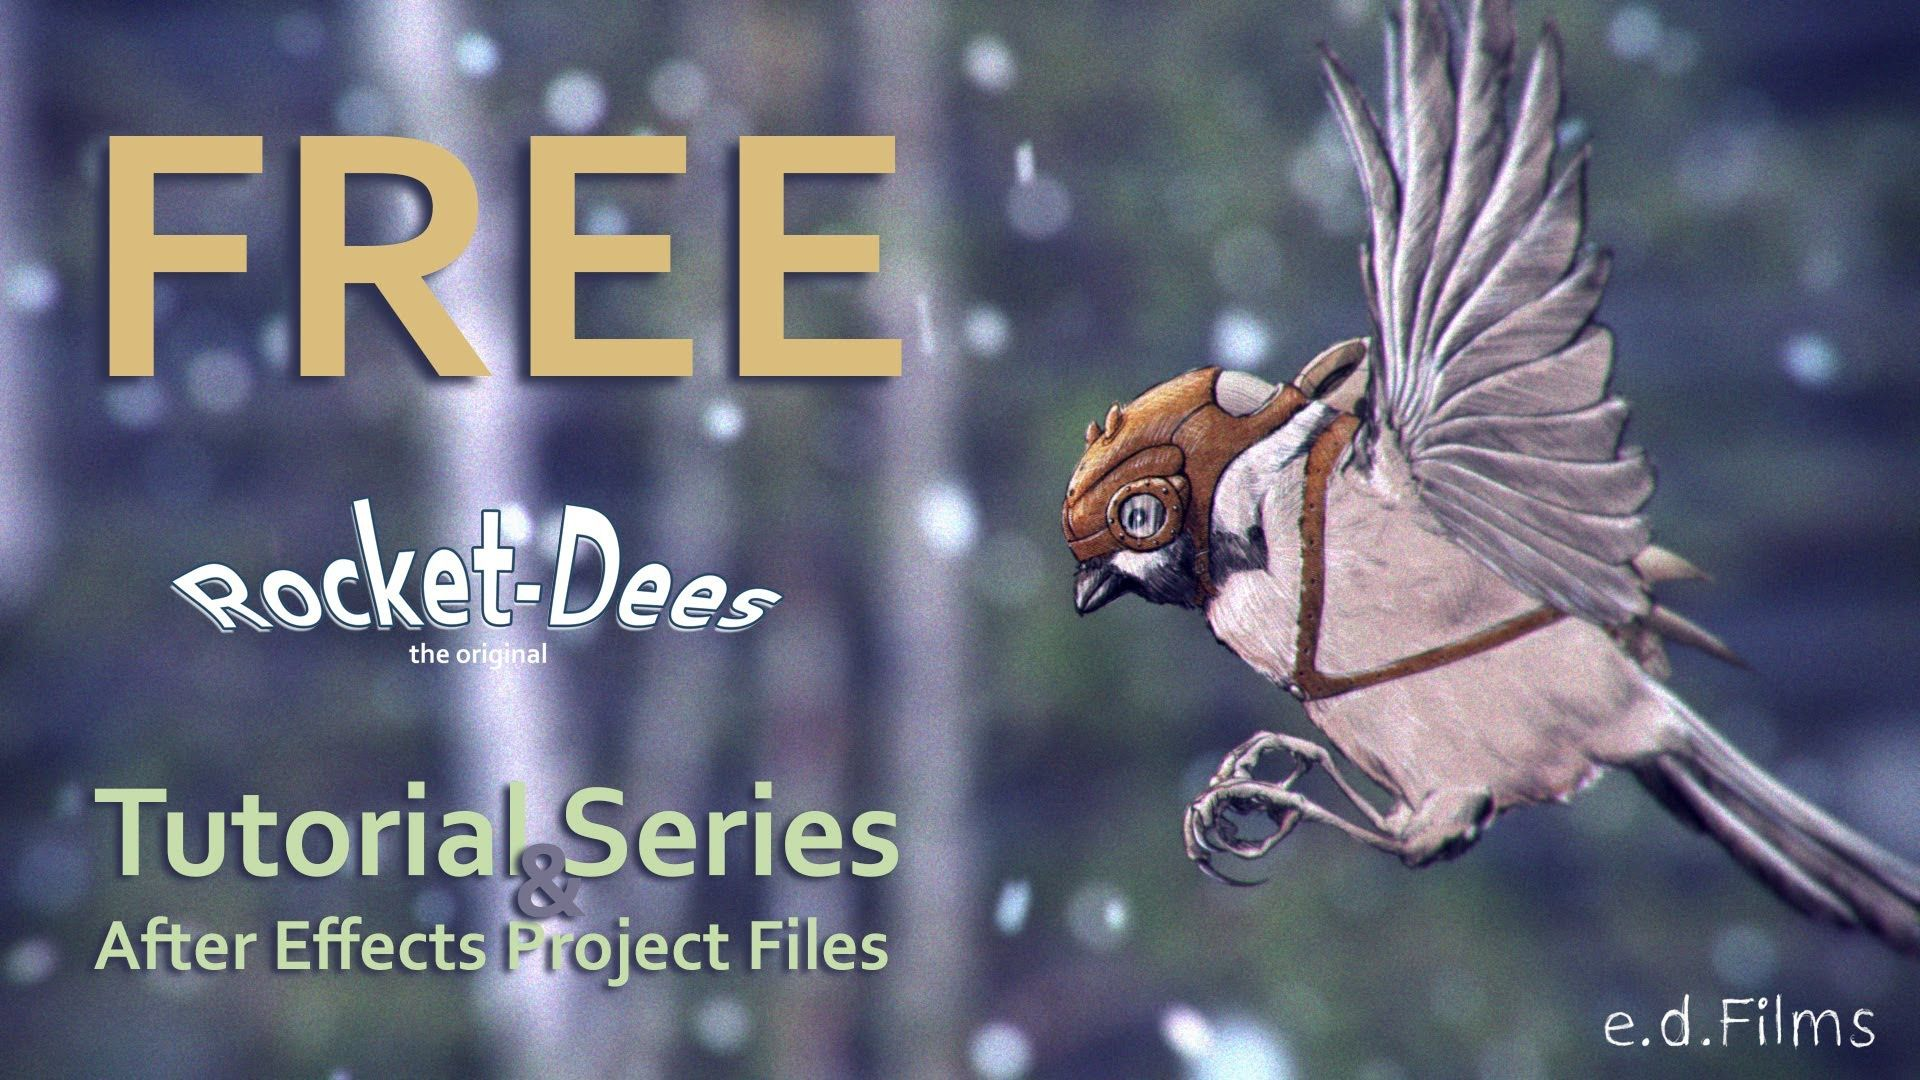 This project uses After Effects, FreeForm Pro for the wings